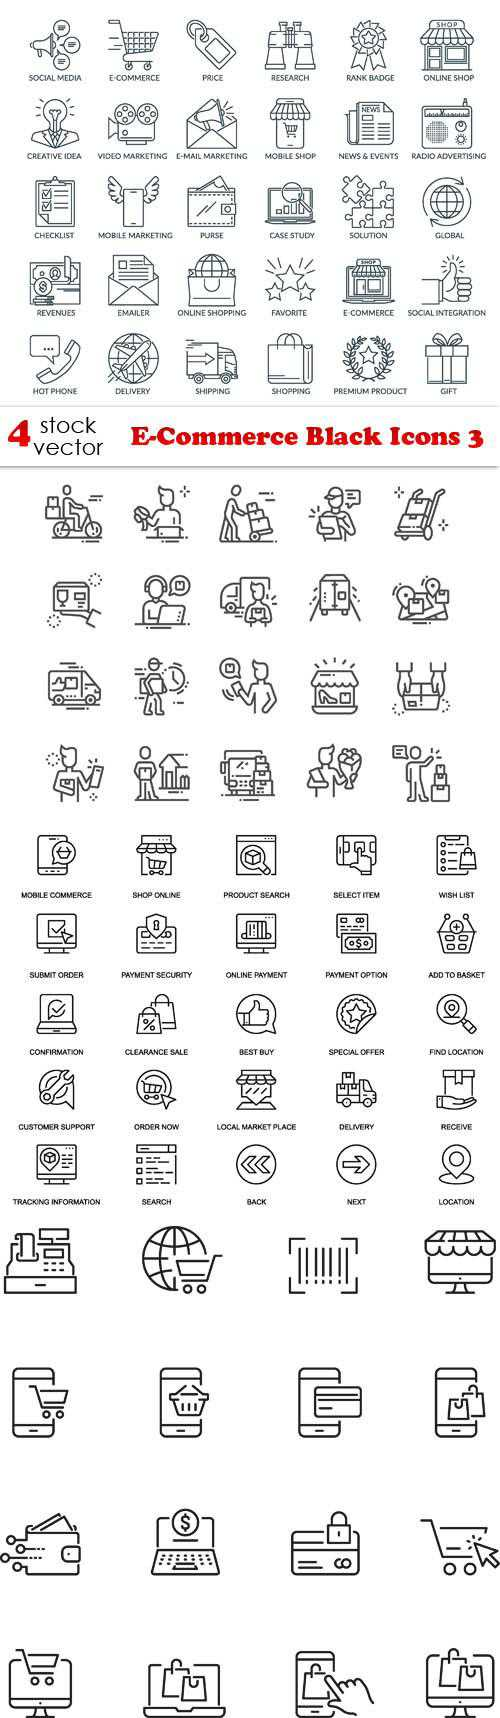 E-Commerce Black Icons 3